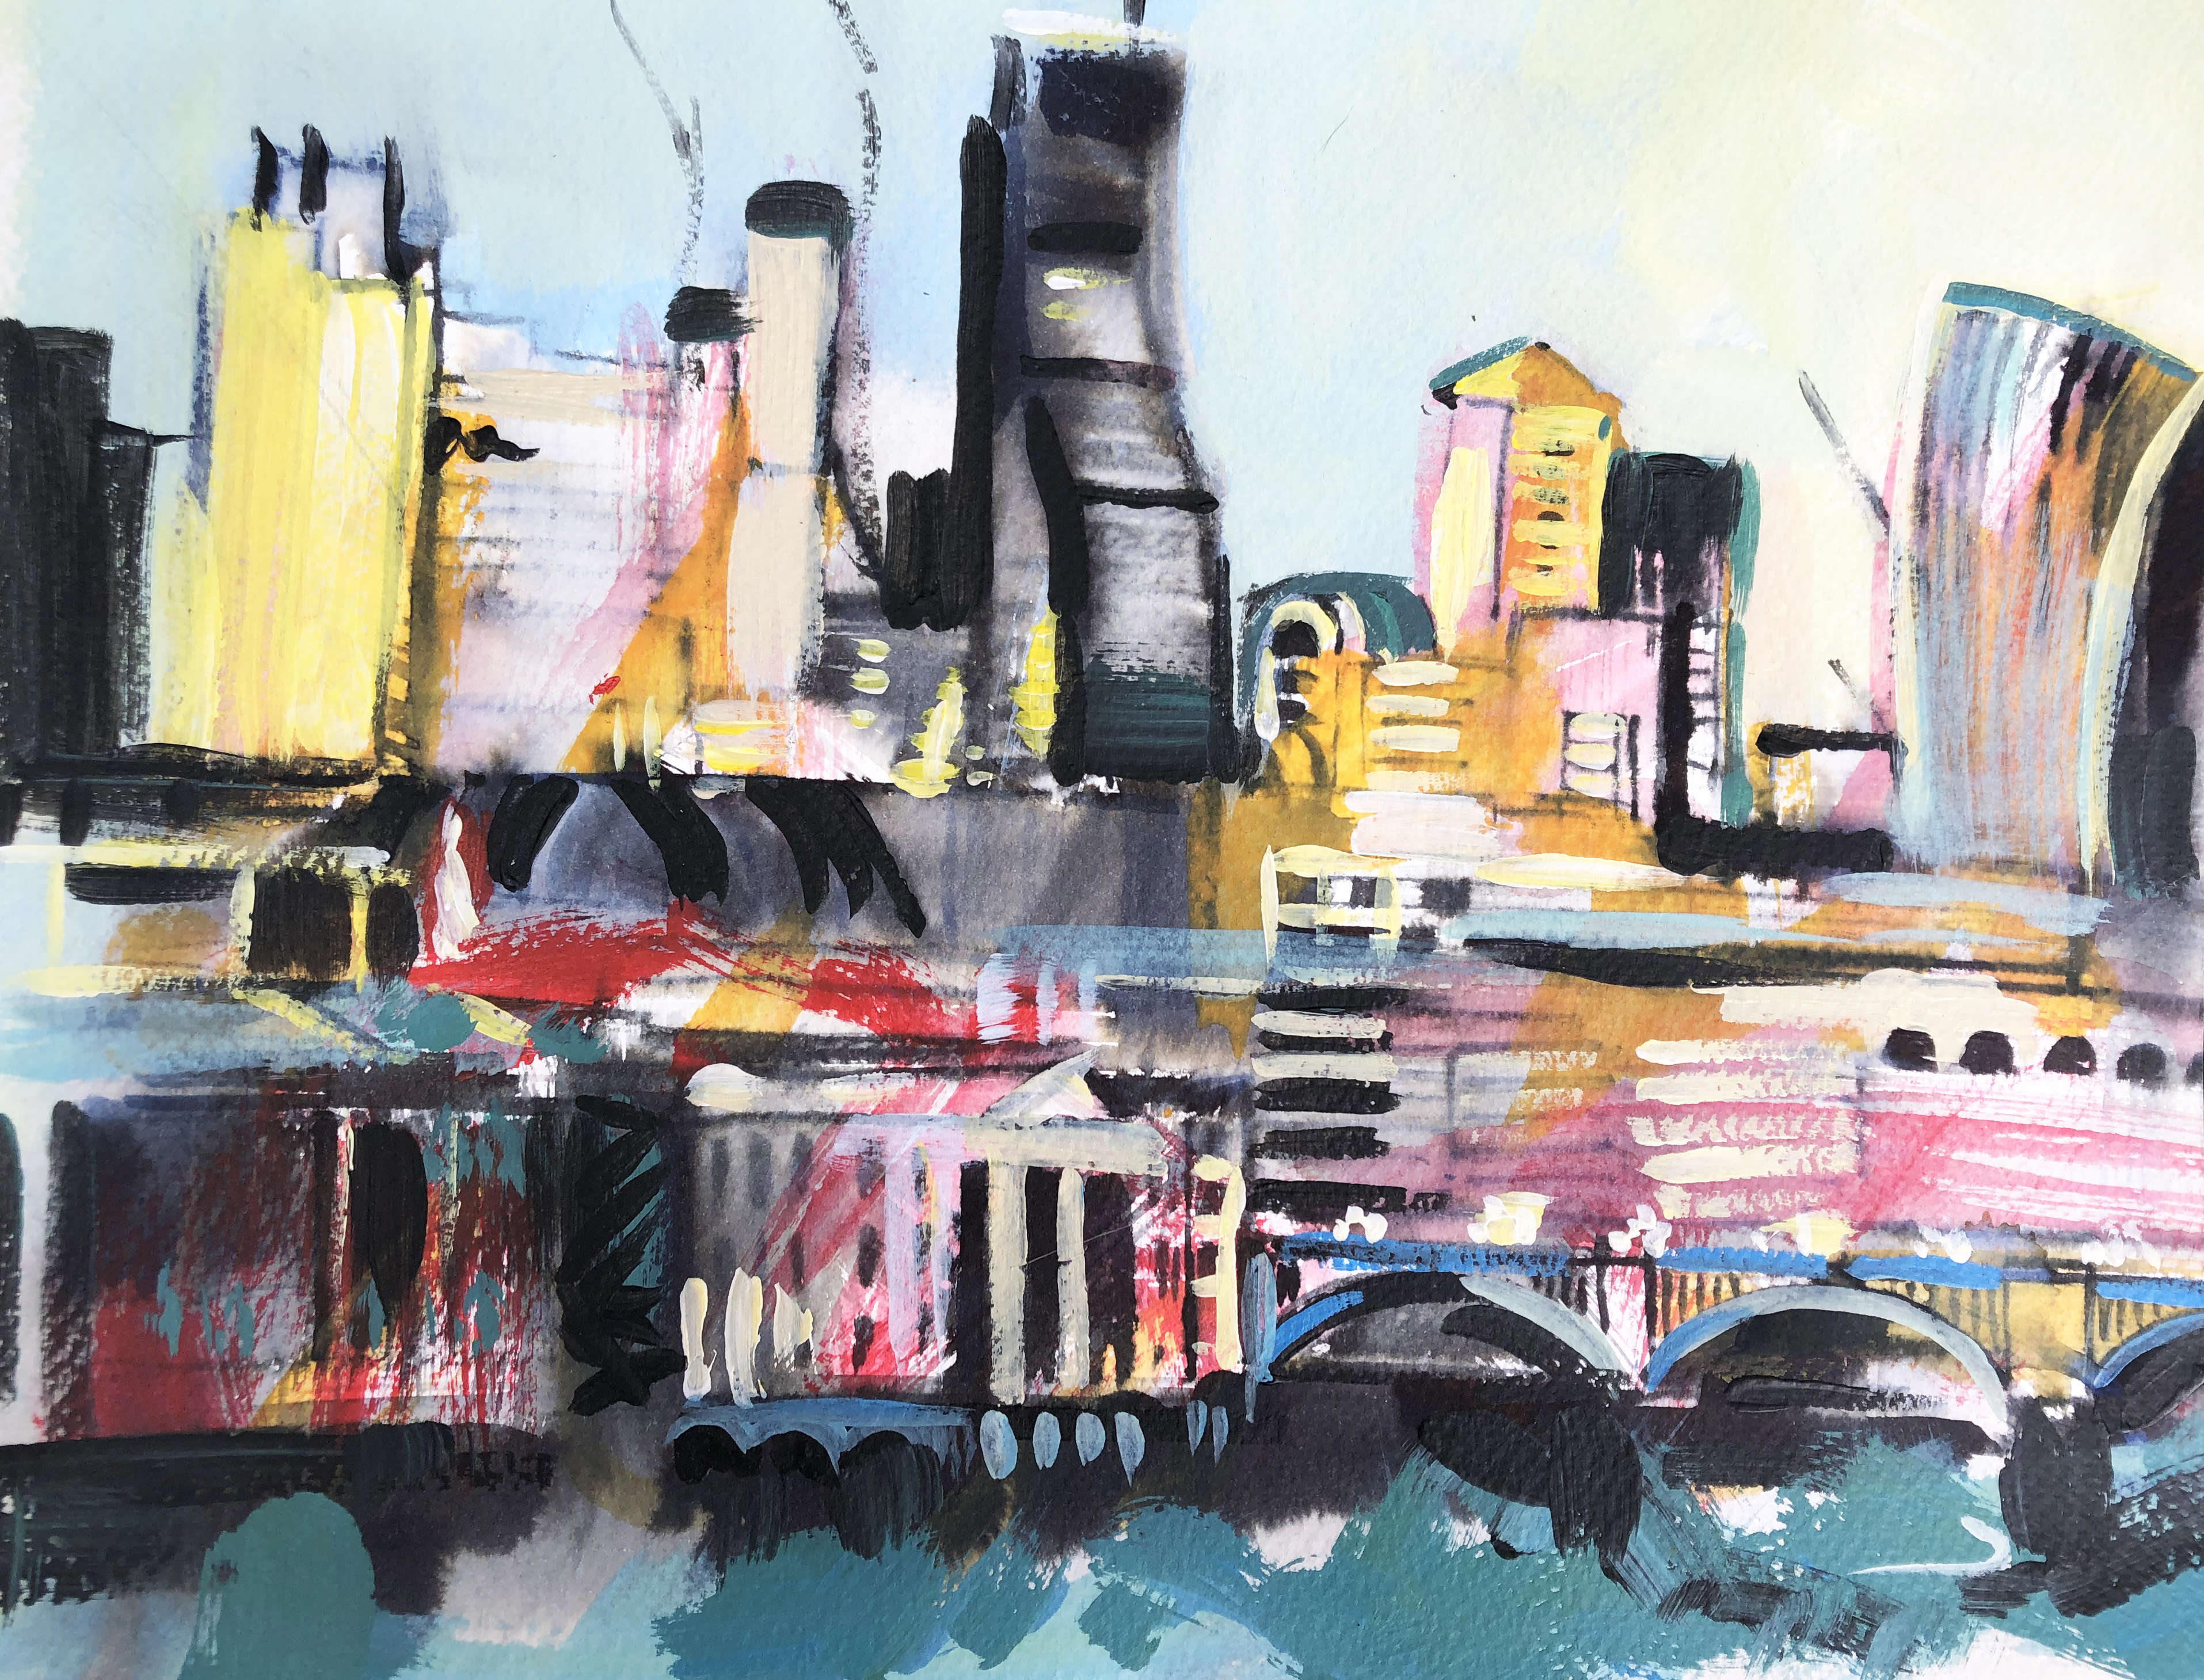 London Acrylic painting